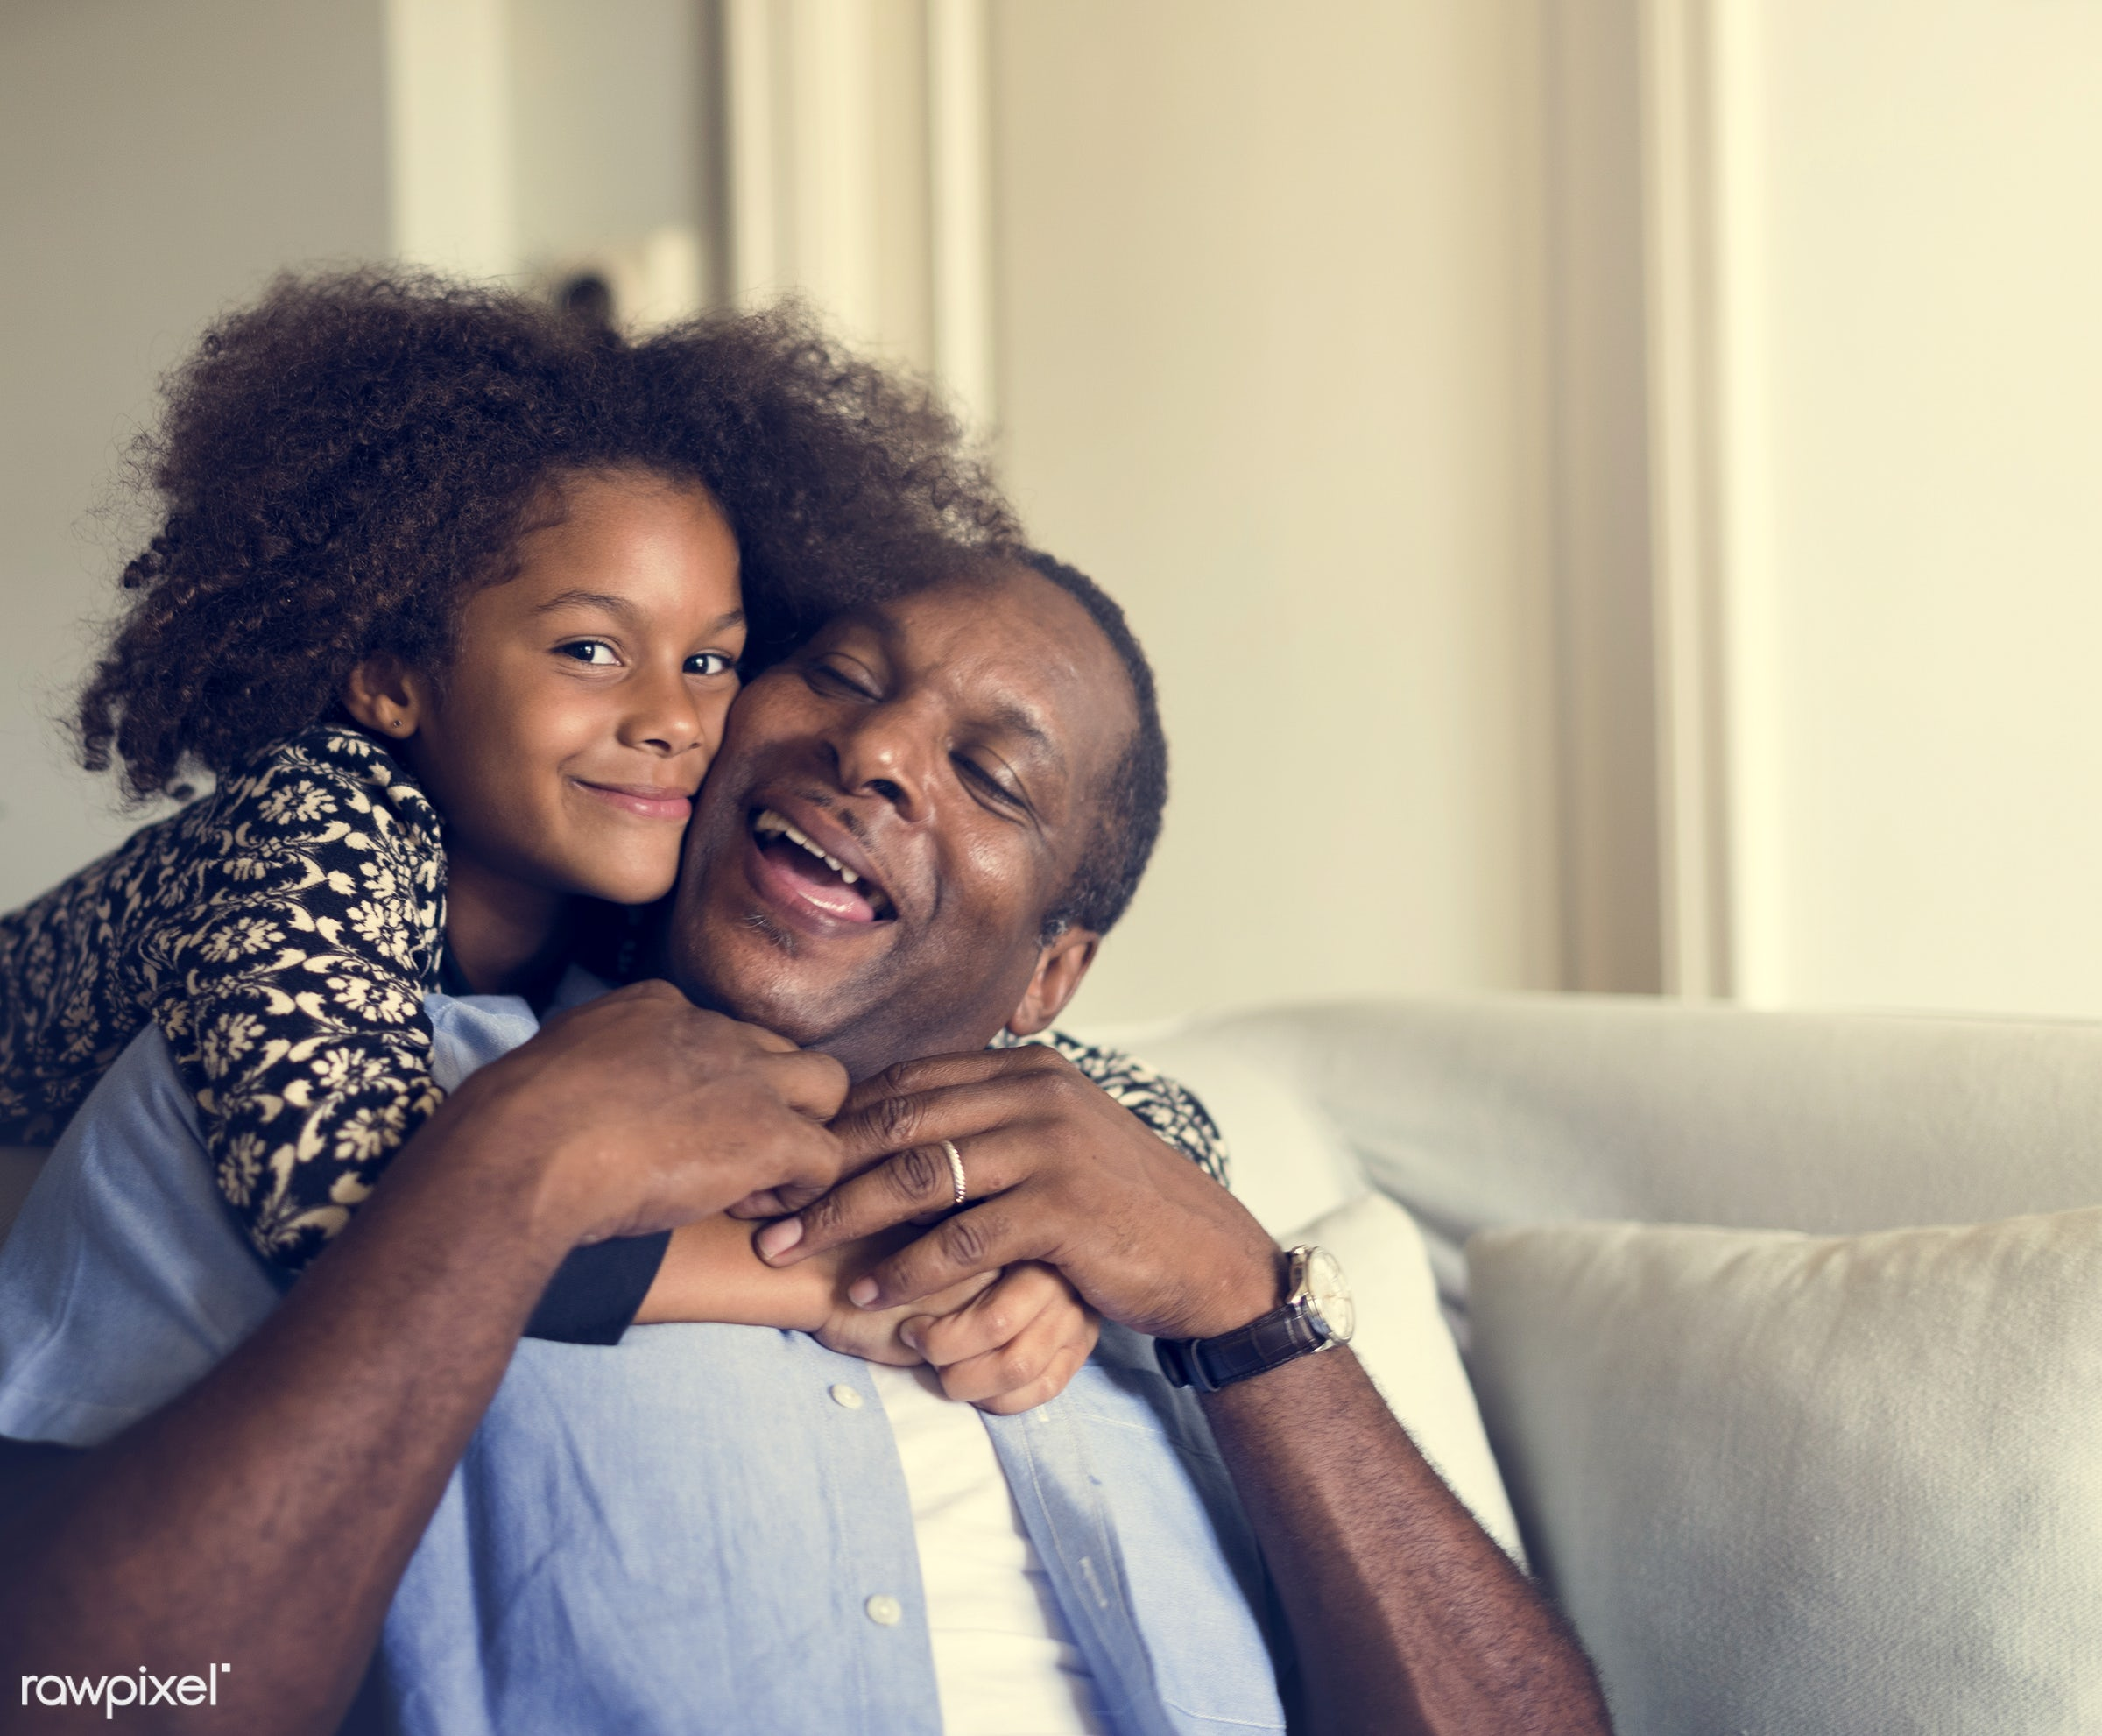 calm, home, african, freedom, residential, relax, daughter, house, people, father, love, life, serenity, family, wellness,...